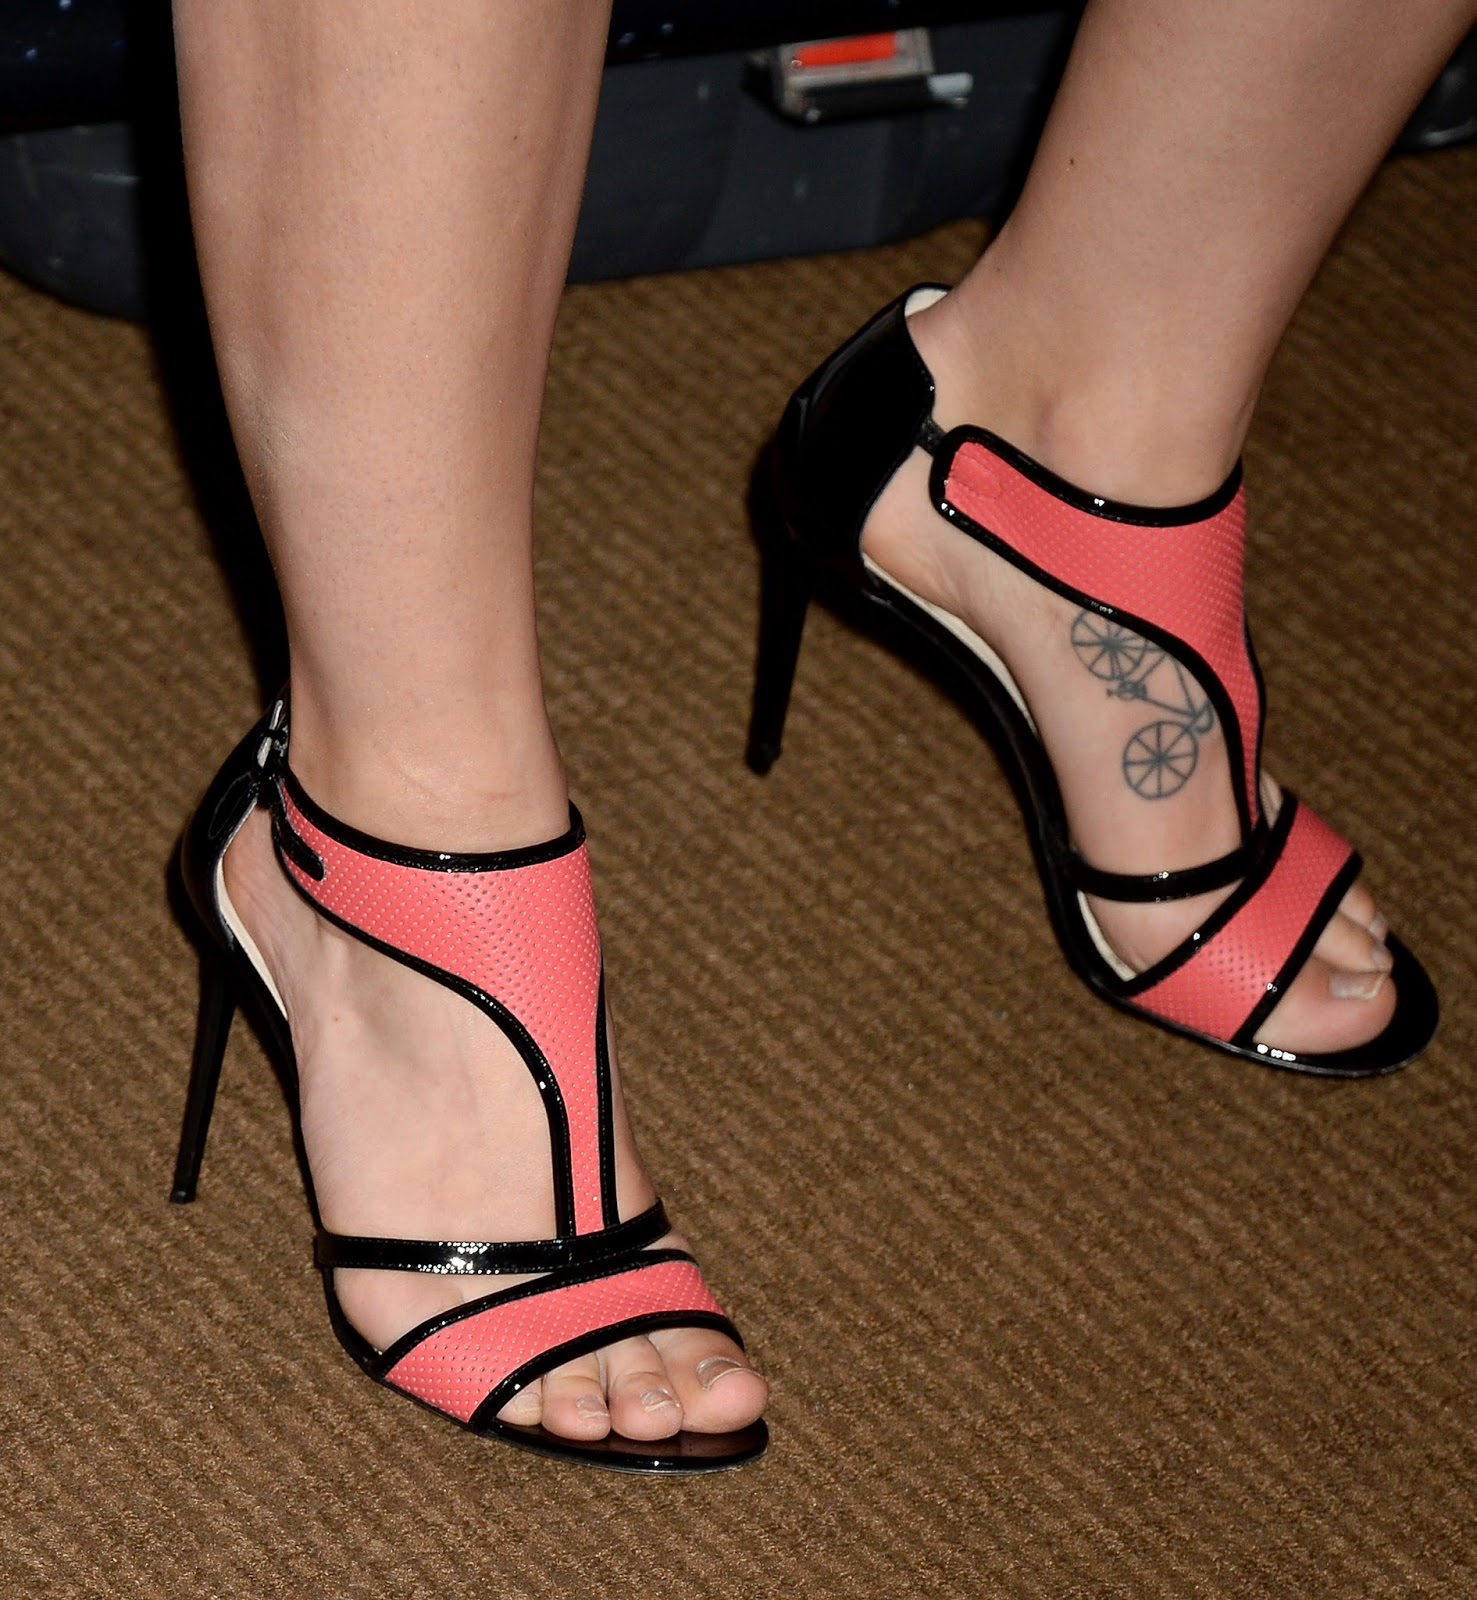 Celebrity Feet Nude Photos 58